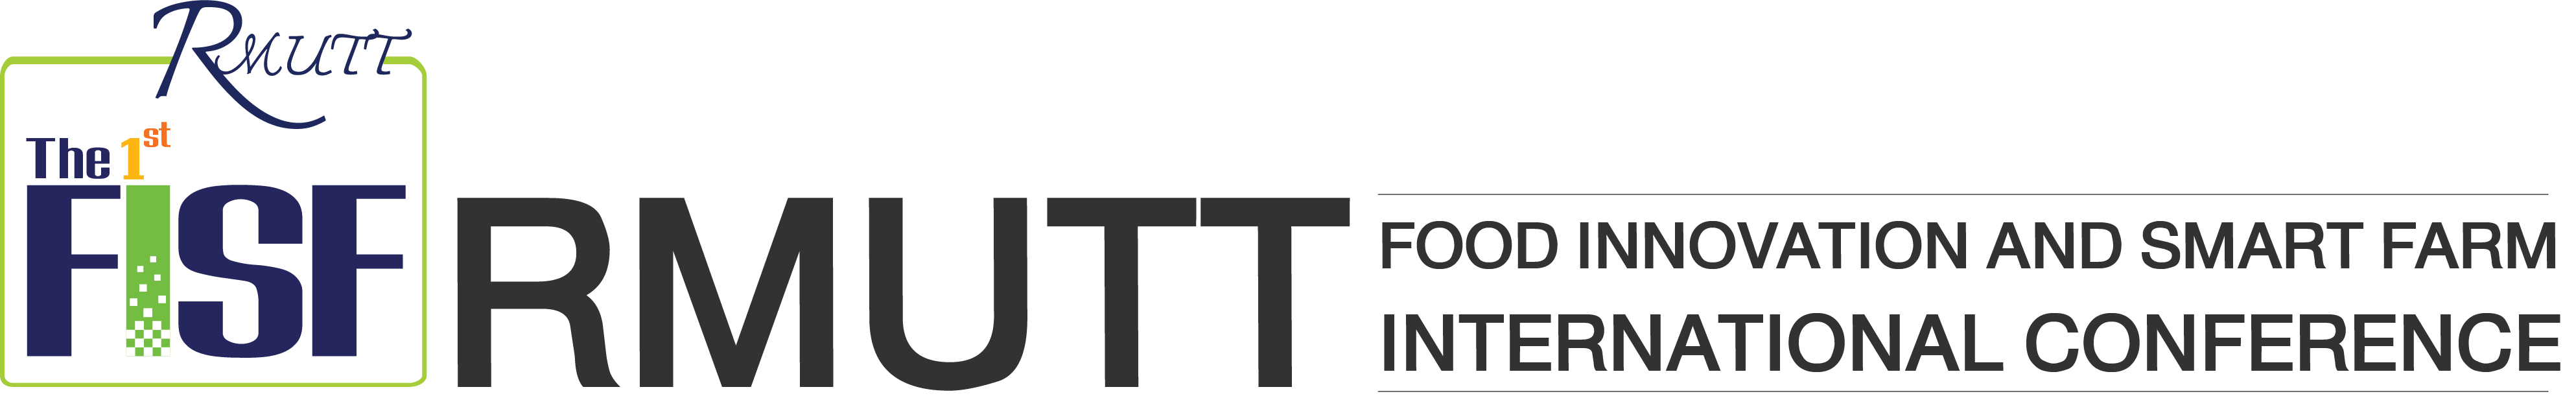 RMUTT Food Innovation and Smart Farm International Conference